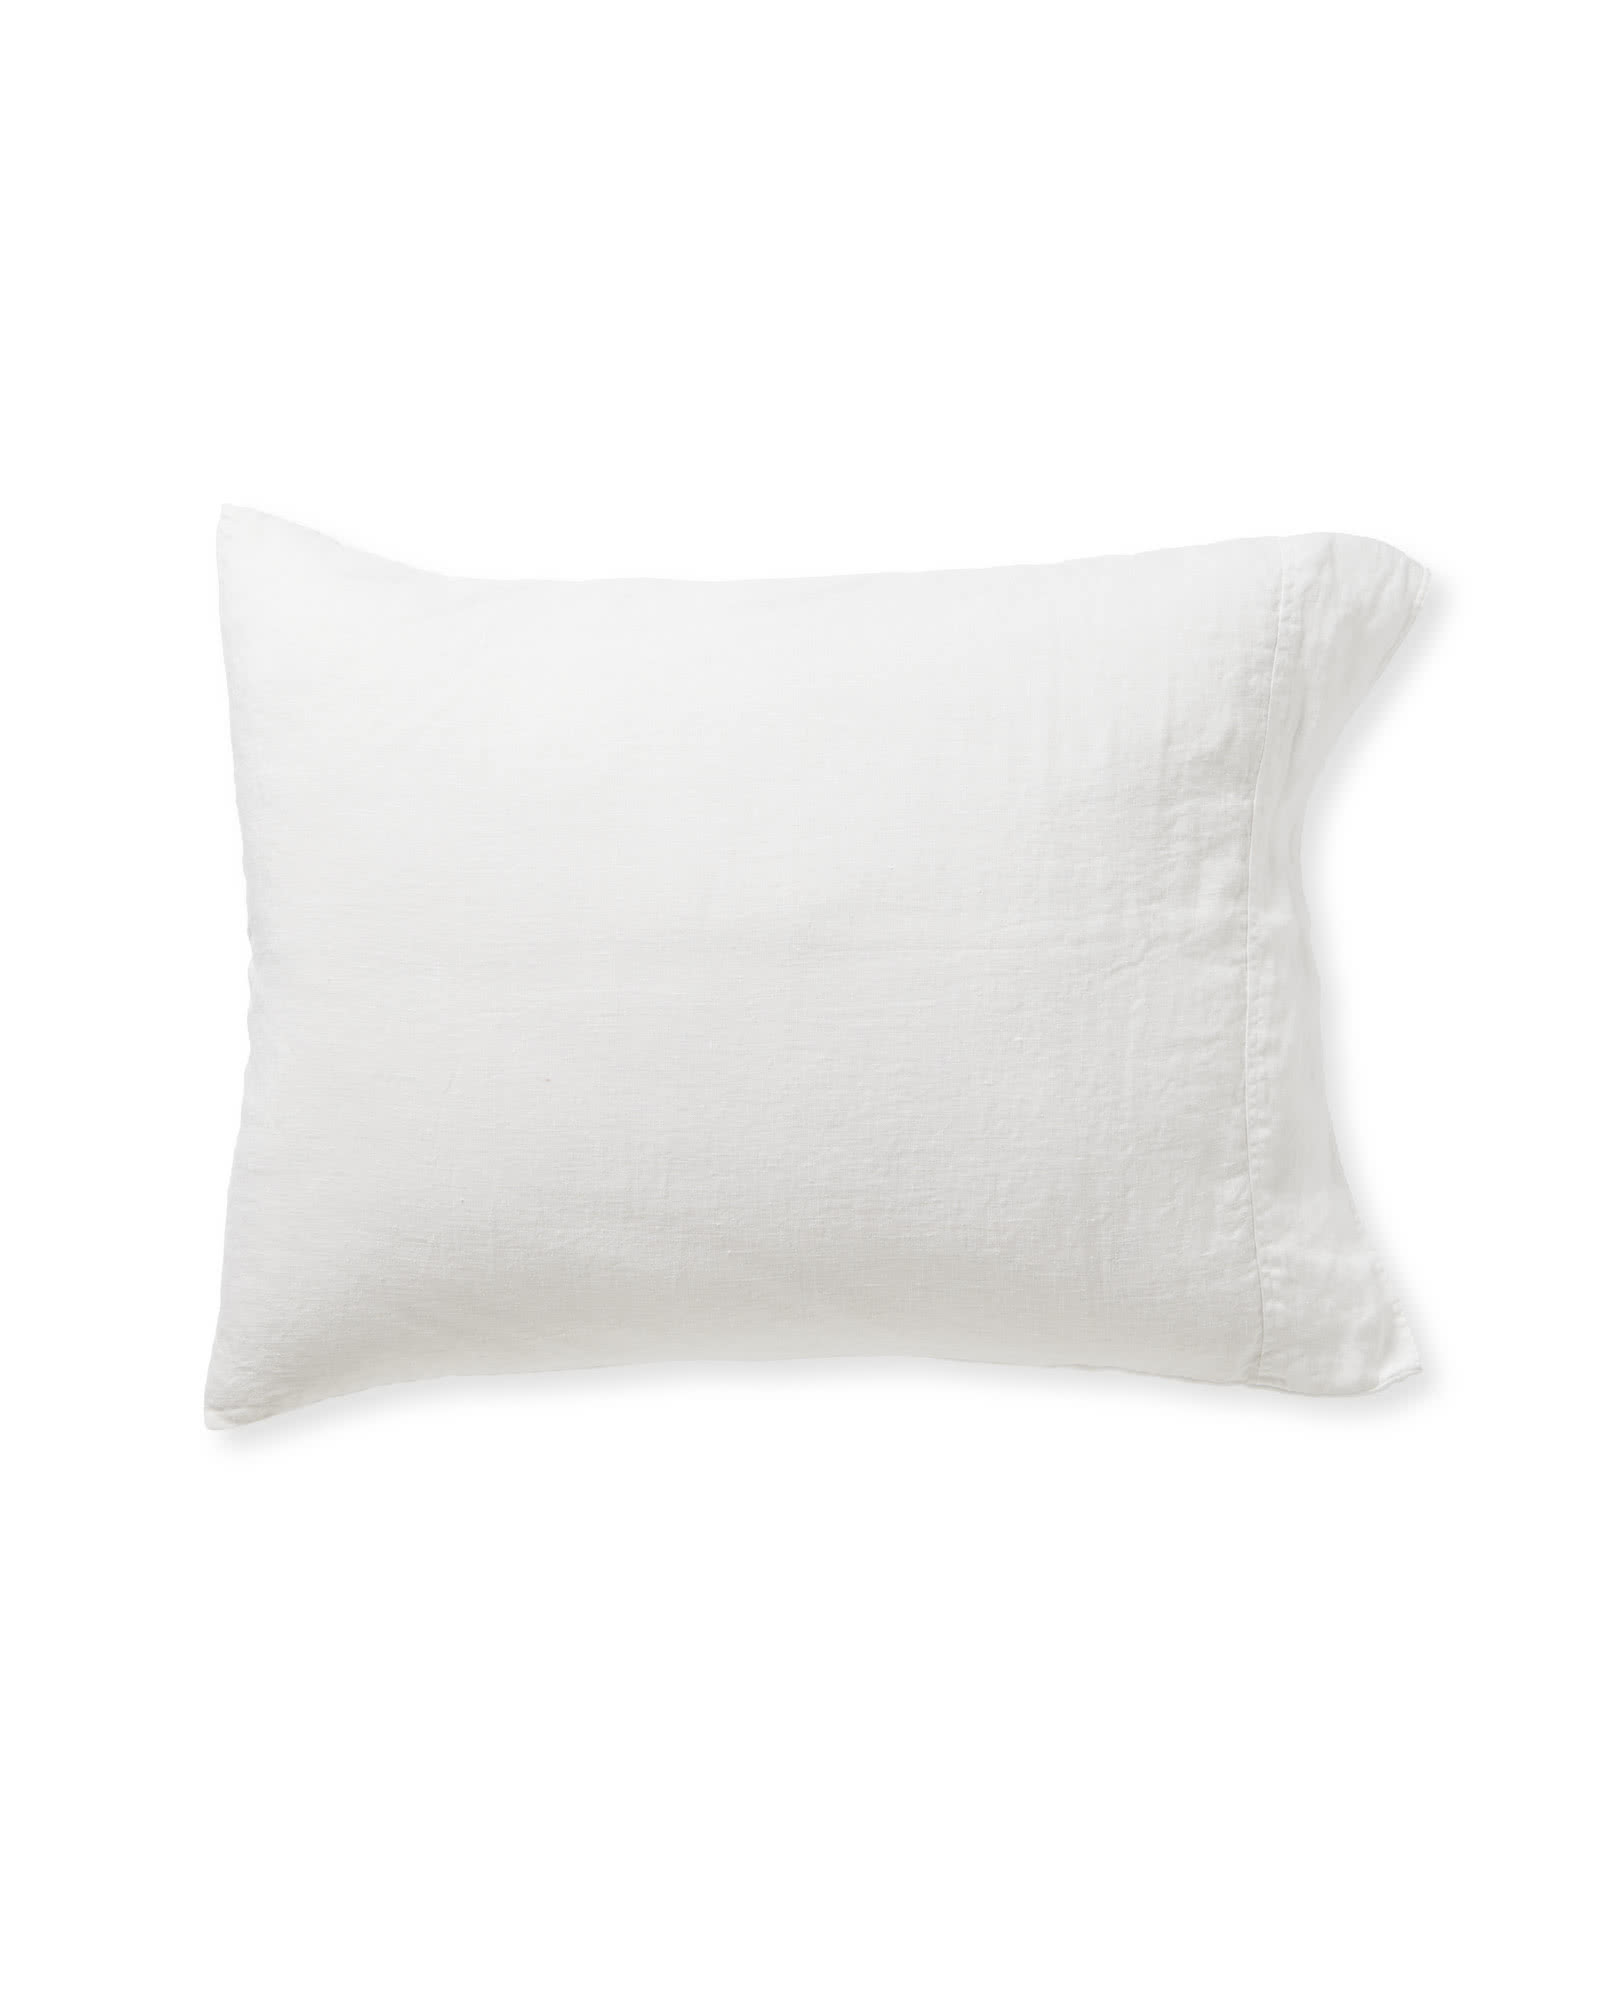 Positano Linen Pillowcases (Extra Set of 2), White